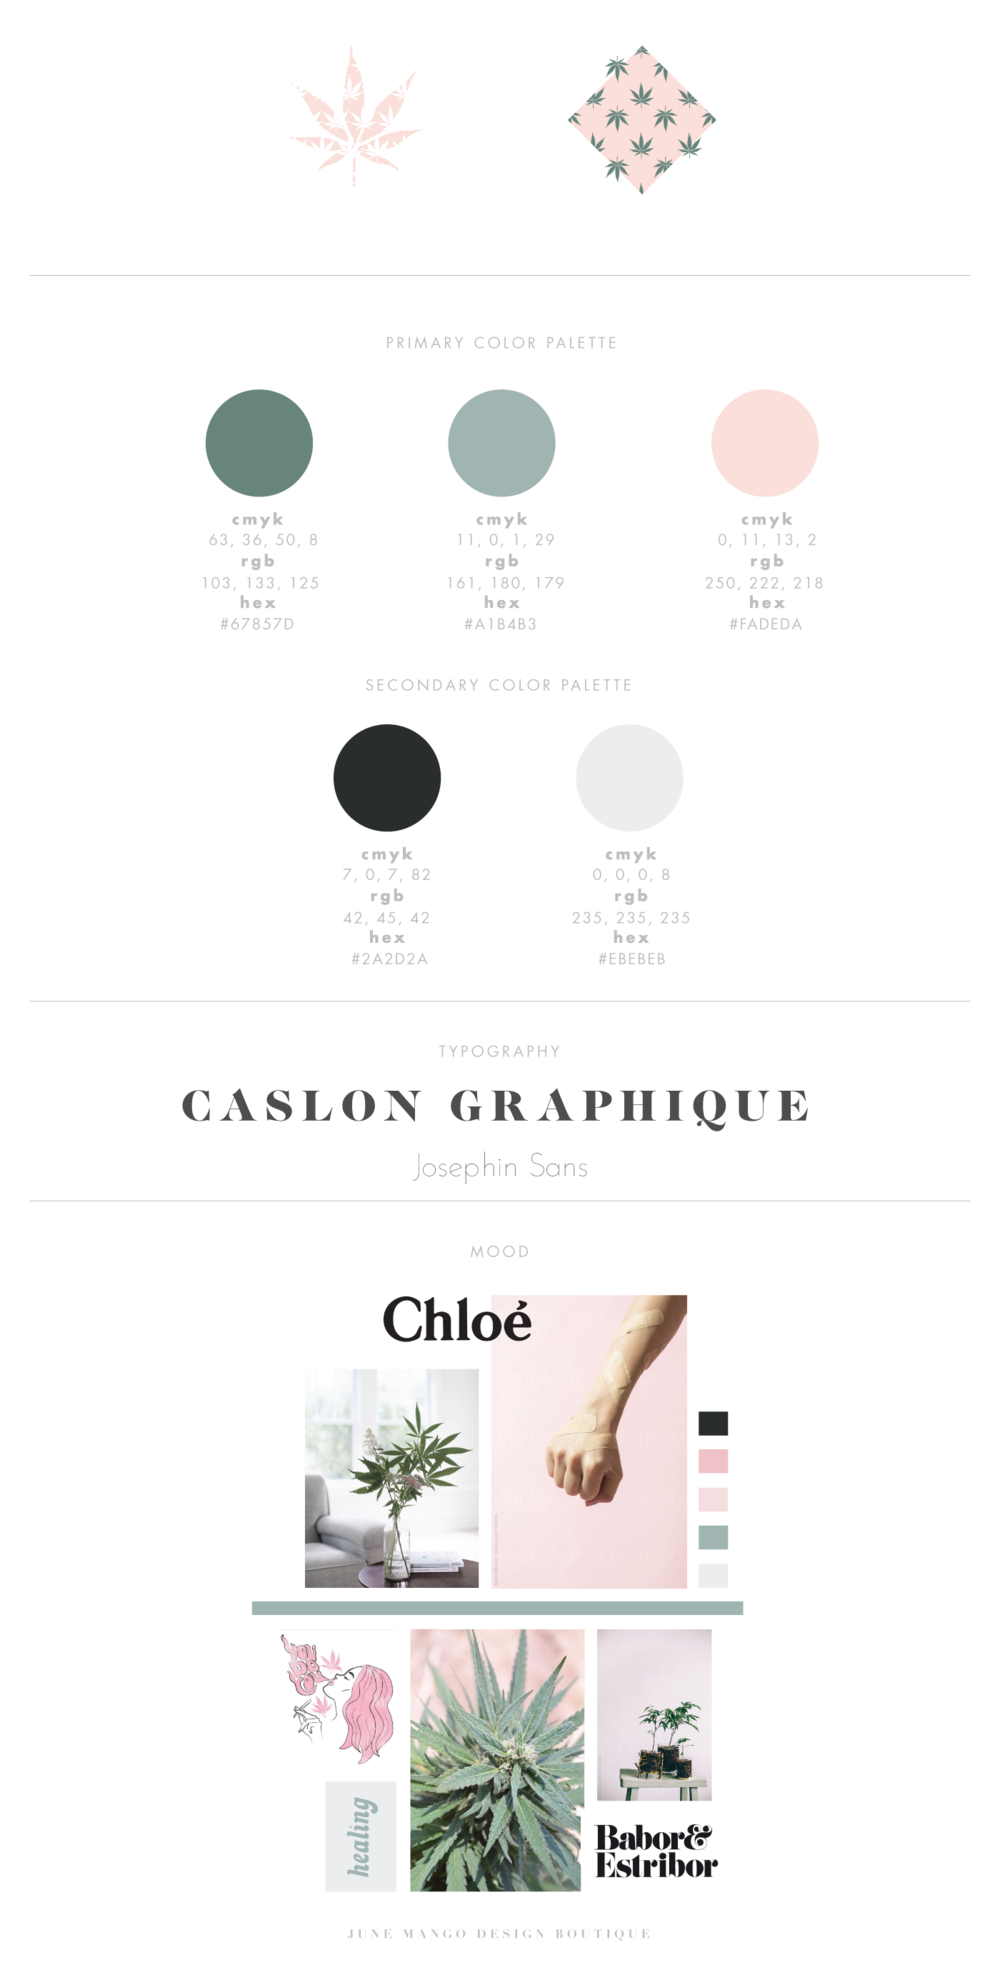 MY-chronic-healing-modern-cannabis-blog-design-weed-logo-pretty.png